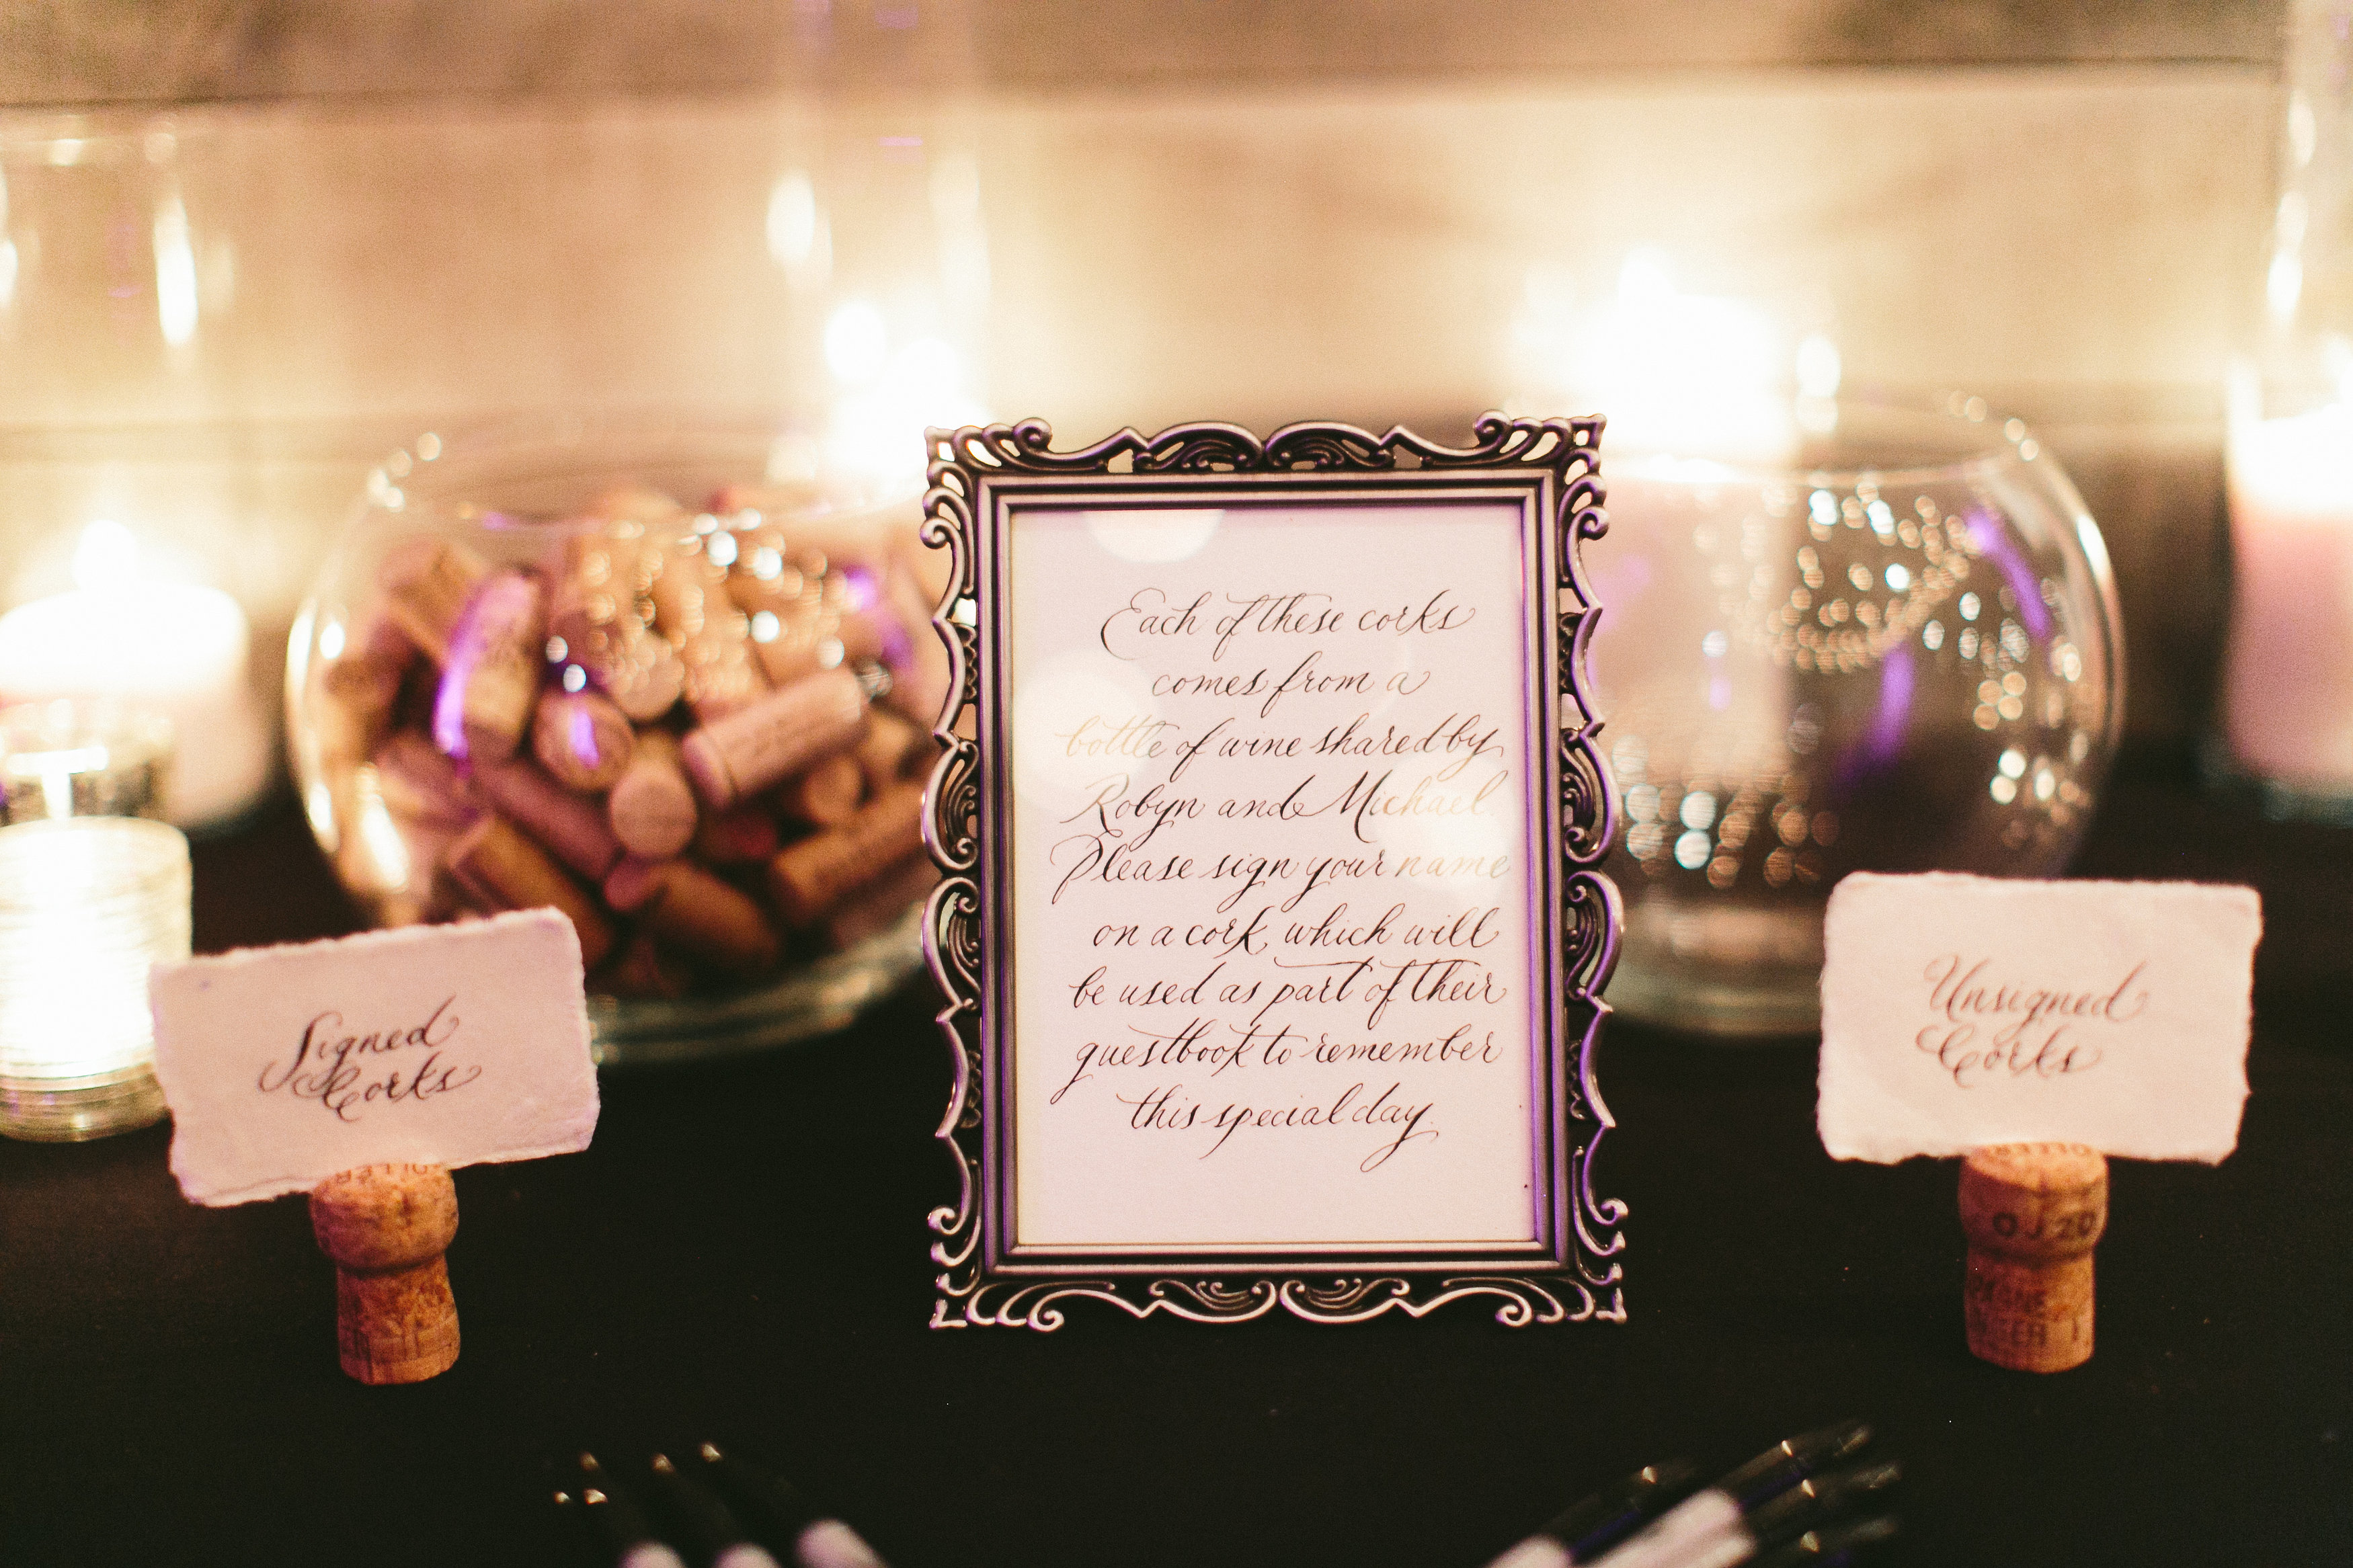 Elegant and Rustic Toronto Wedding in the Distillery District - Cork signing guestbook